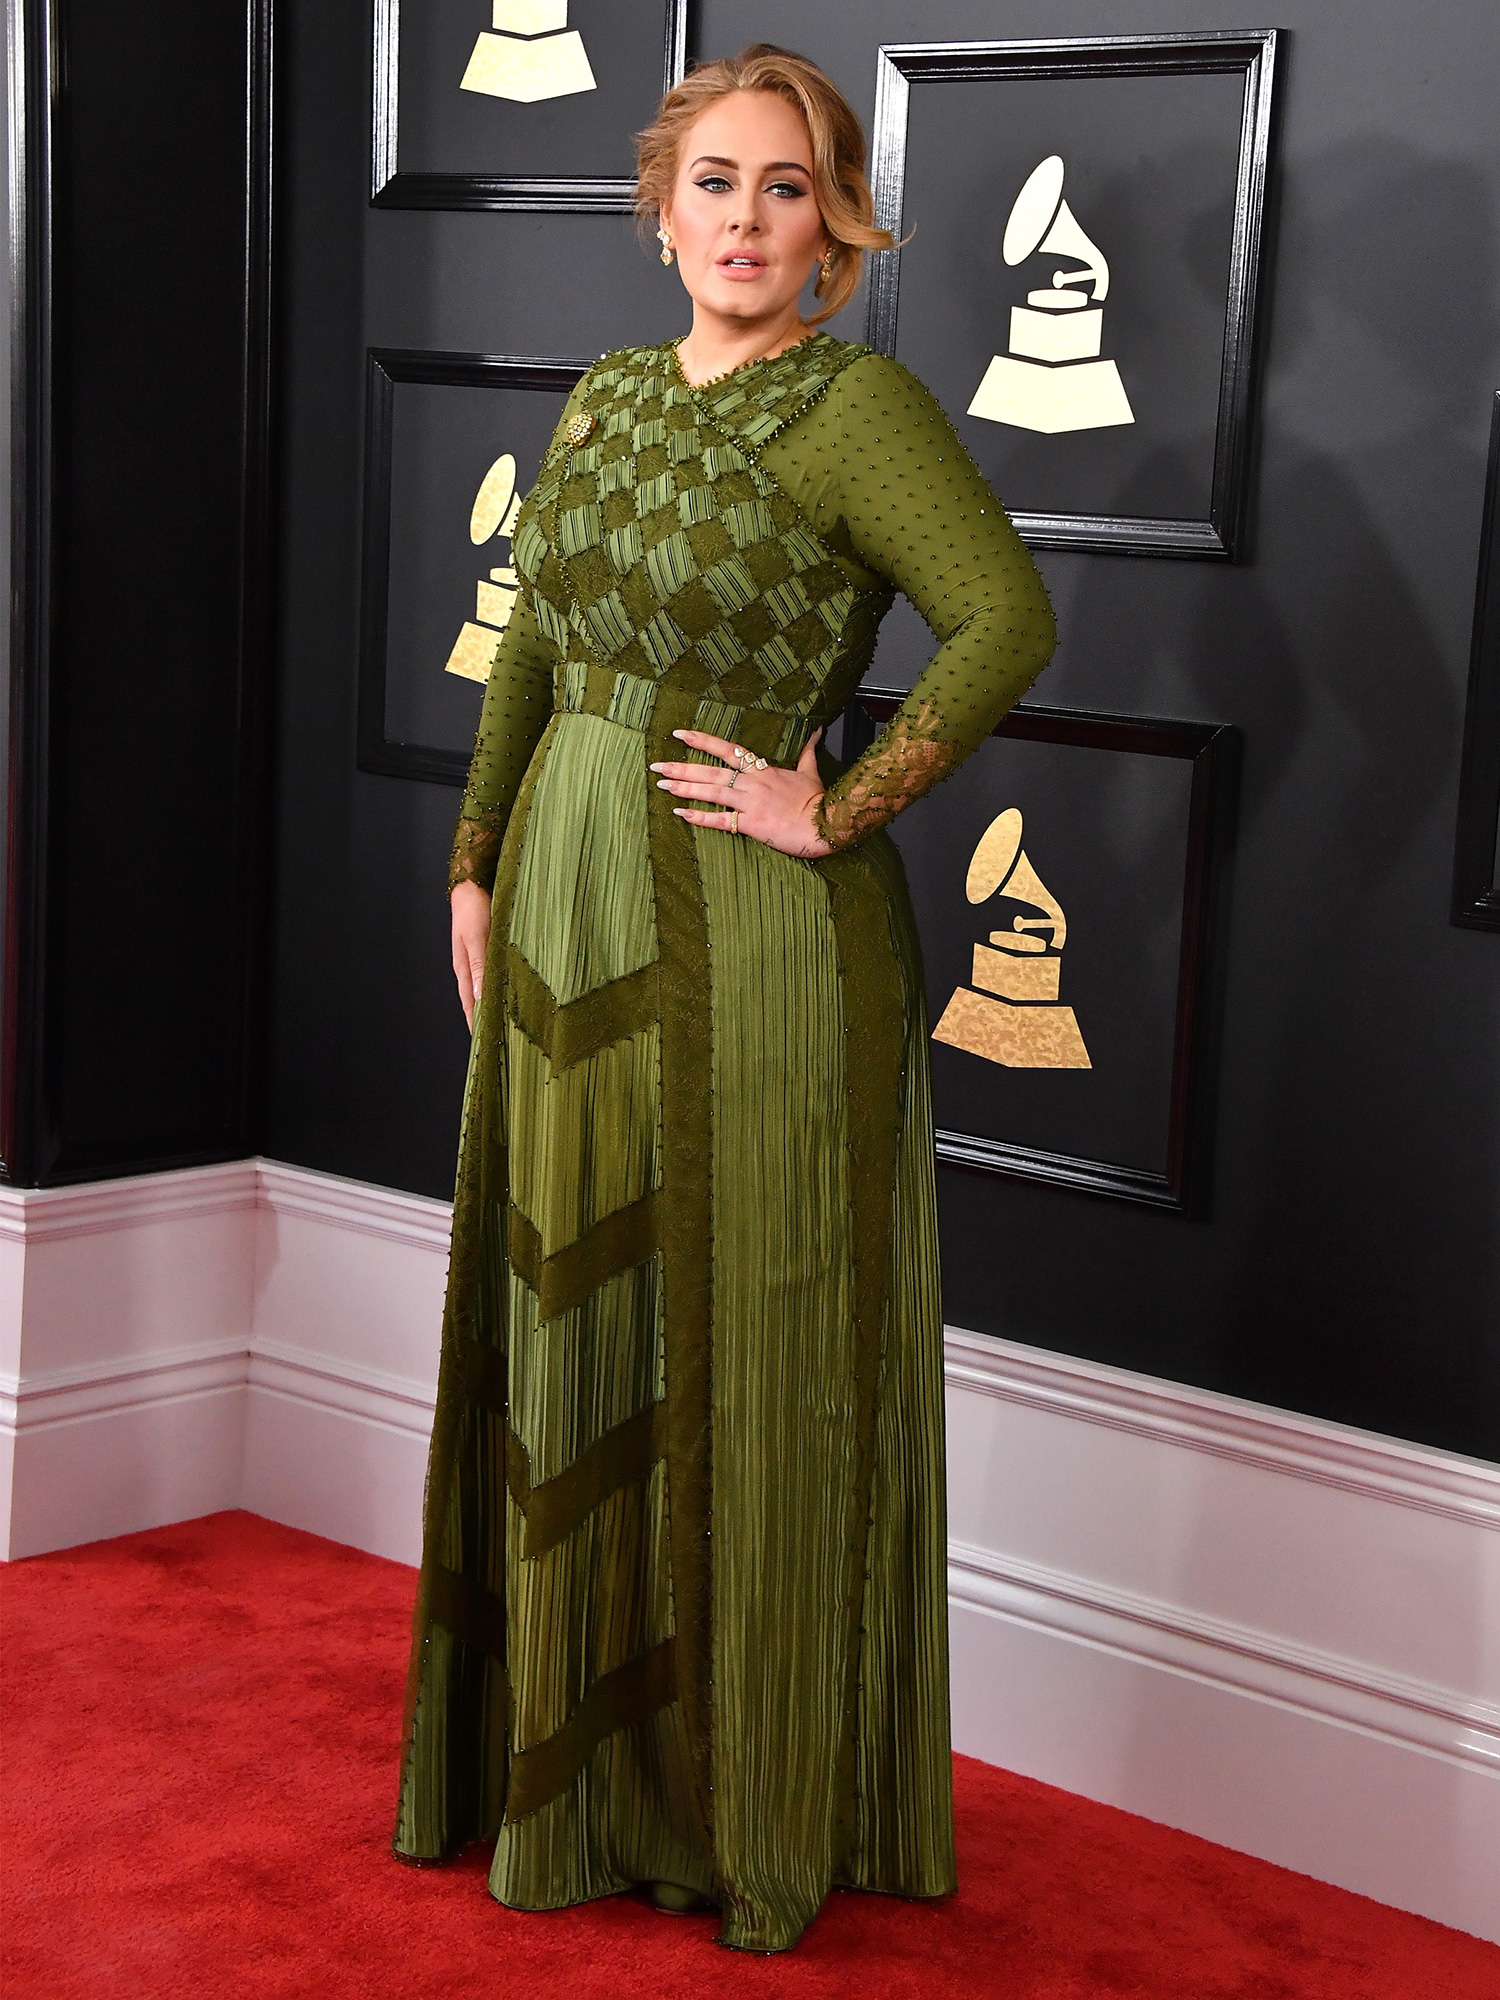 LOS ANGELES, CA - FEBRUARY 12: Singer Adele attends The 59th GRAMMY Awards at STAPLES Center on February 12, 2017 in Los Angeles, California. (Photo by Steve Granitz/WireImage)